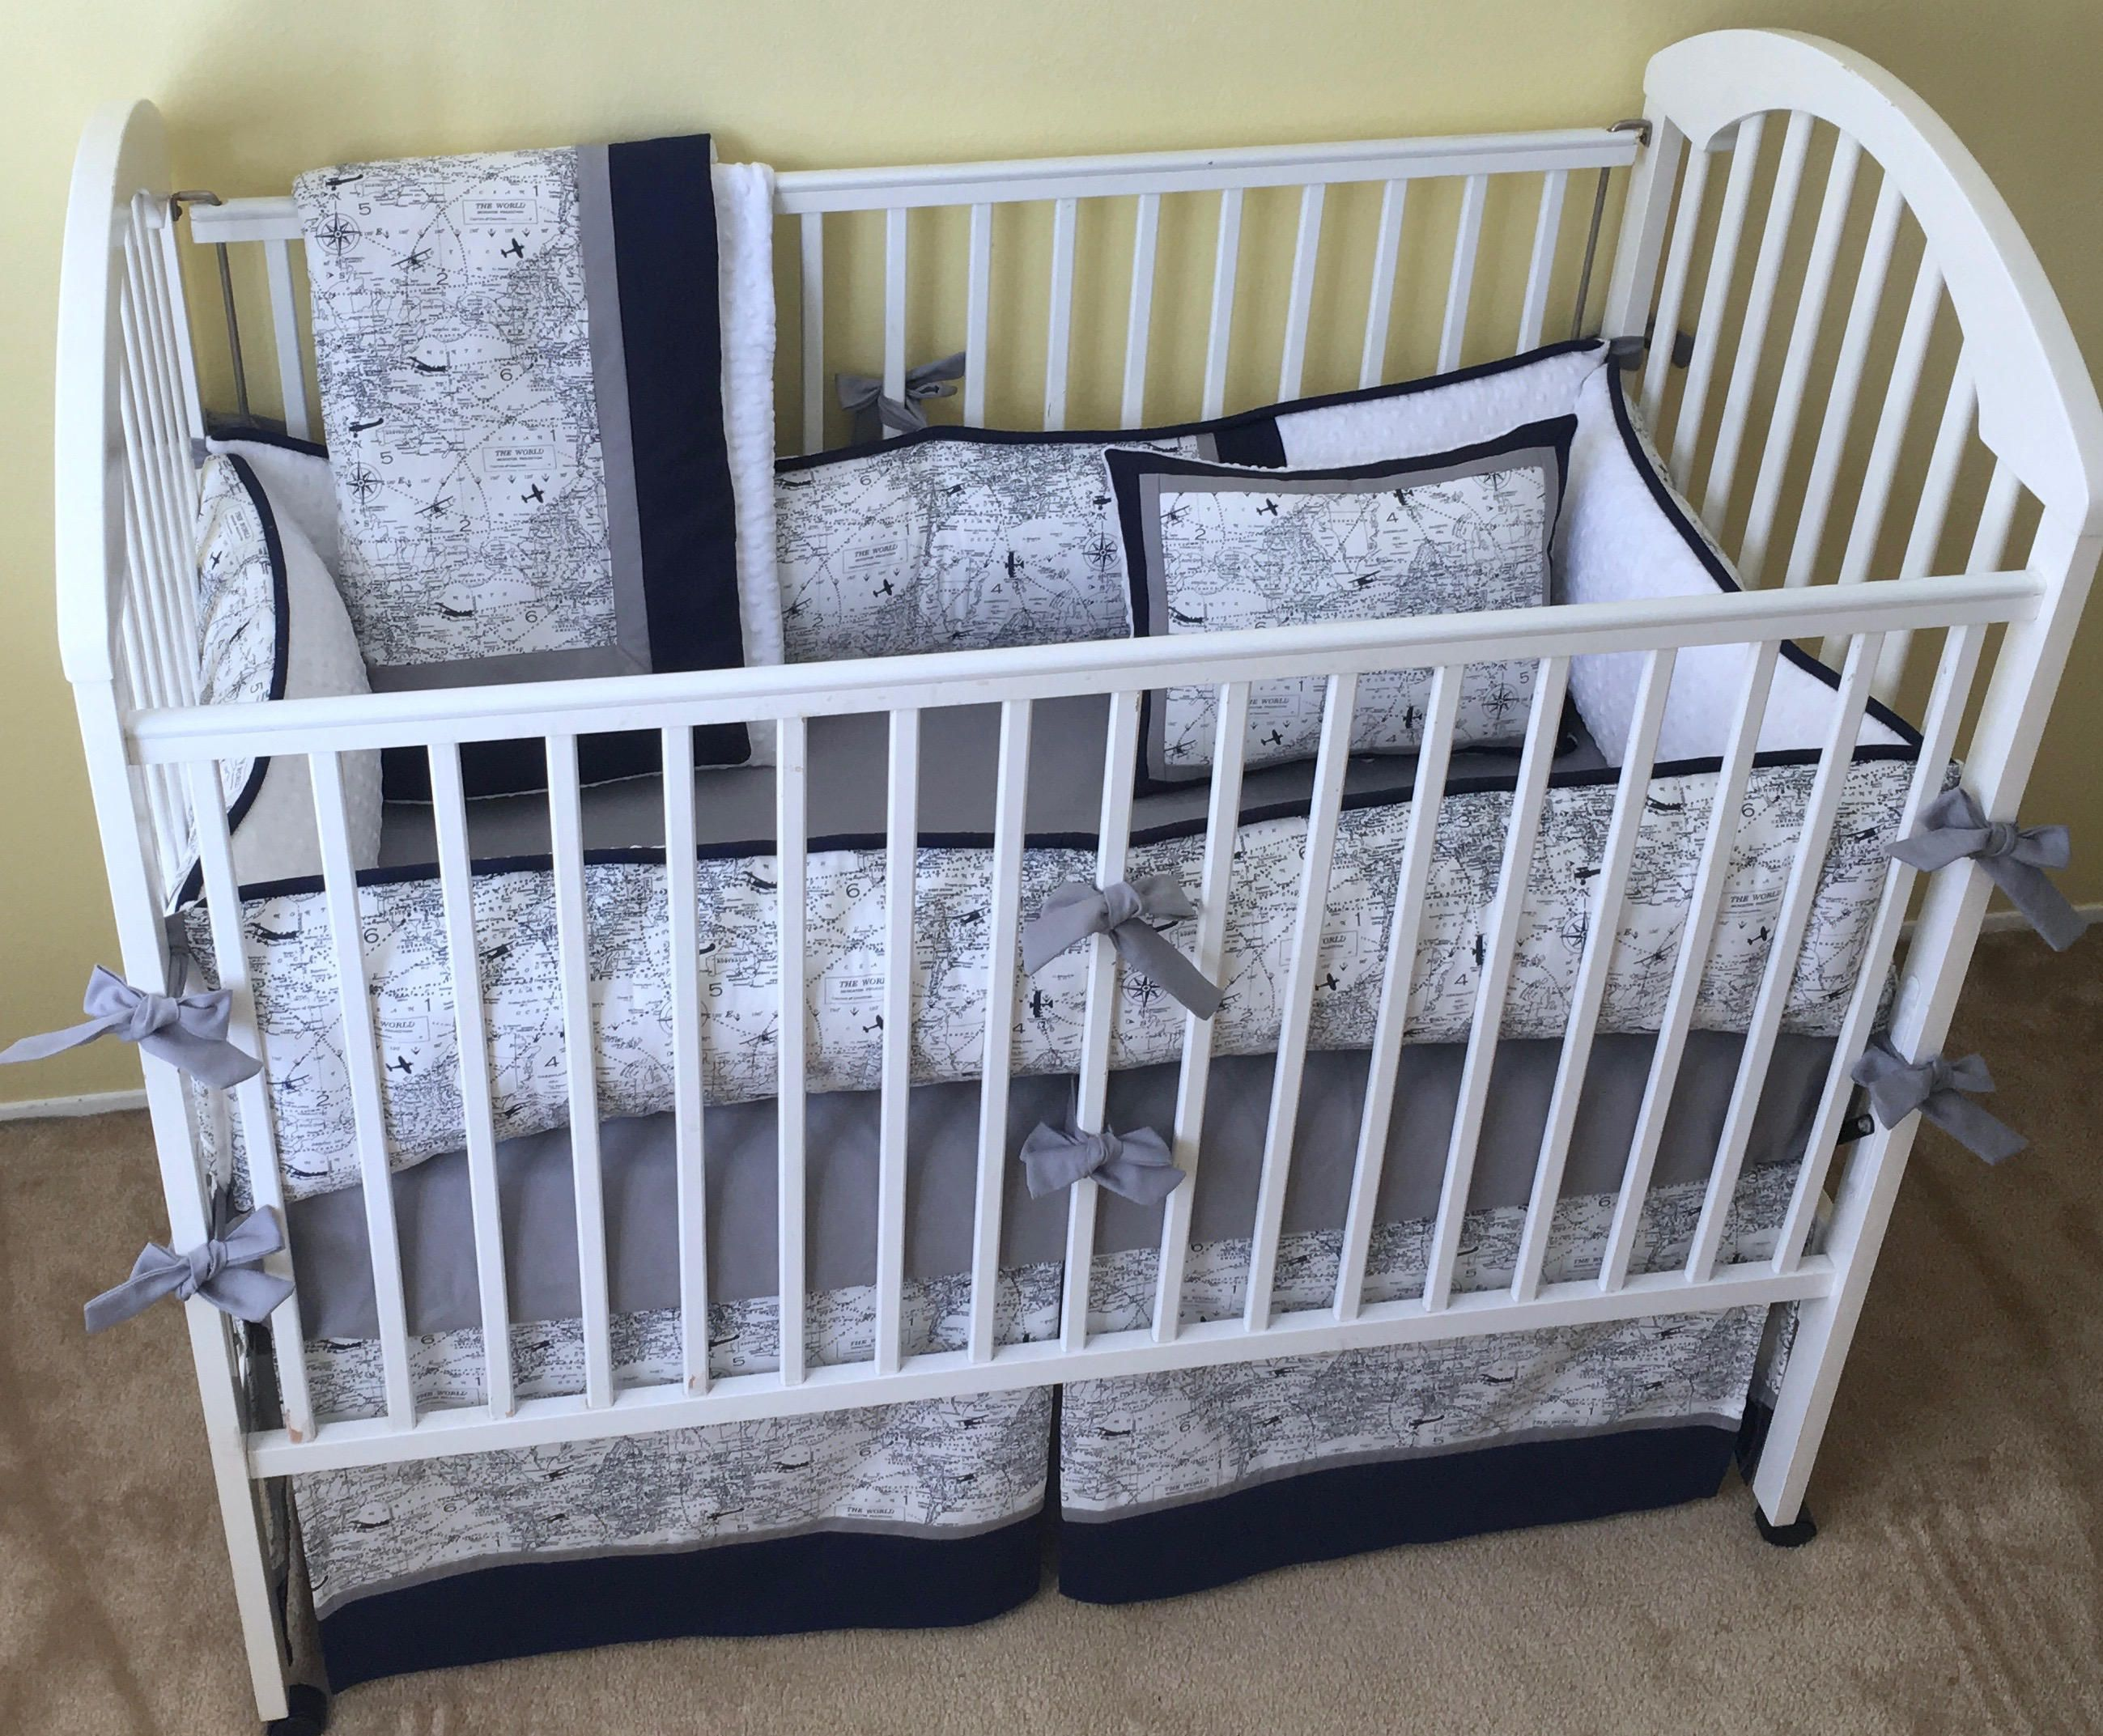 neutral alluring at cribs inserts us regaling toys of mesh pads without cri bars large baby bedding bumper impressive porta crib bumpers r and pad vertical size mini for to